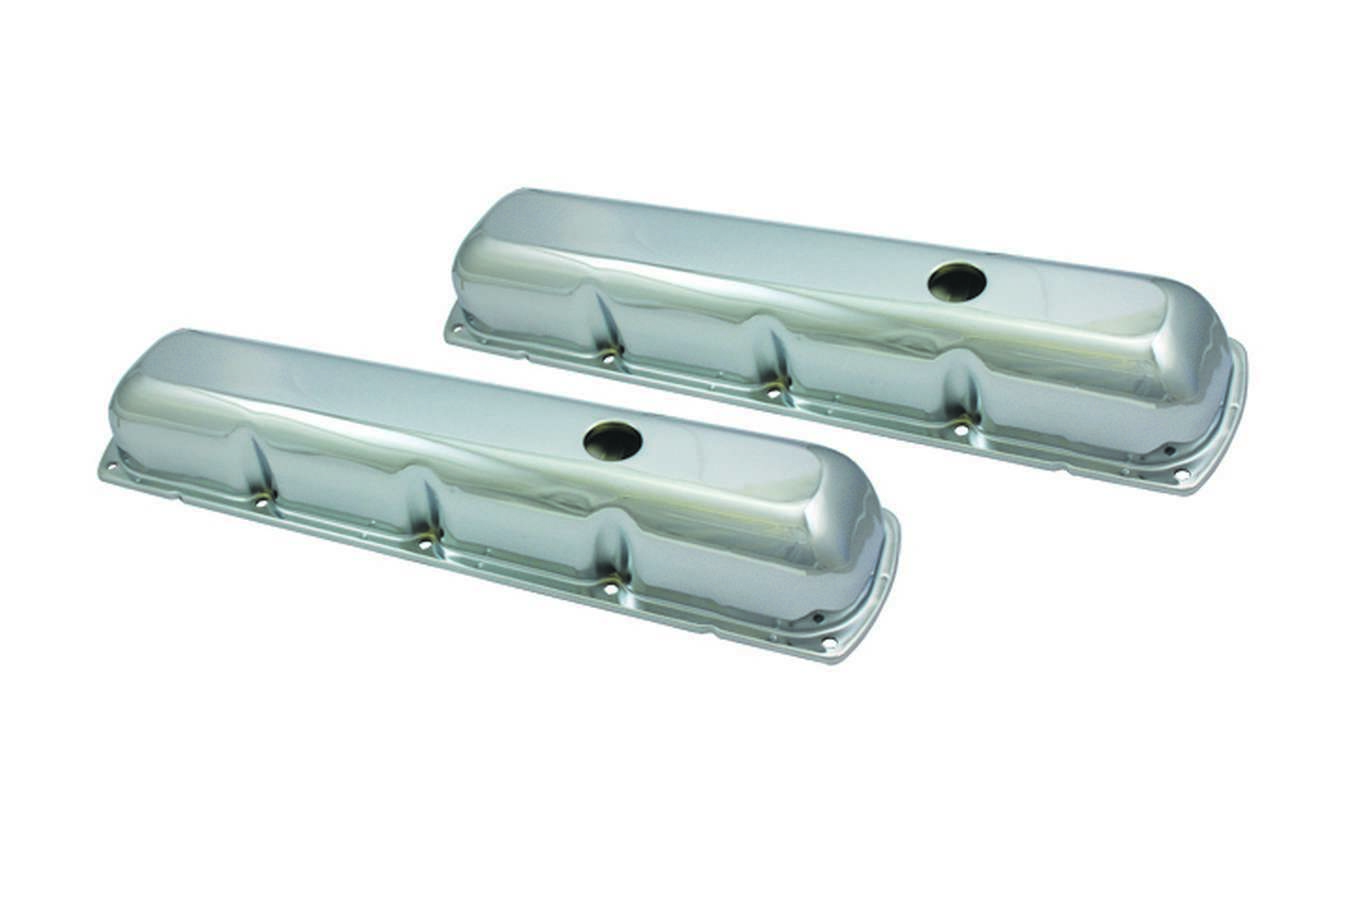 Specialty Products 8544 Valve Cover, Stock Height, Baffled, Breather Holes, Steel, Chrome, Oldsmobile V8, Pair